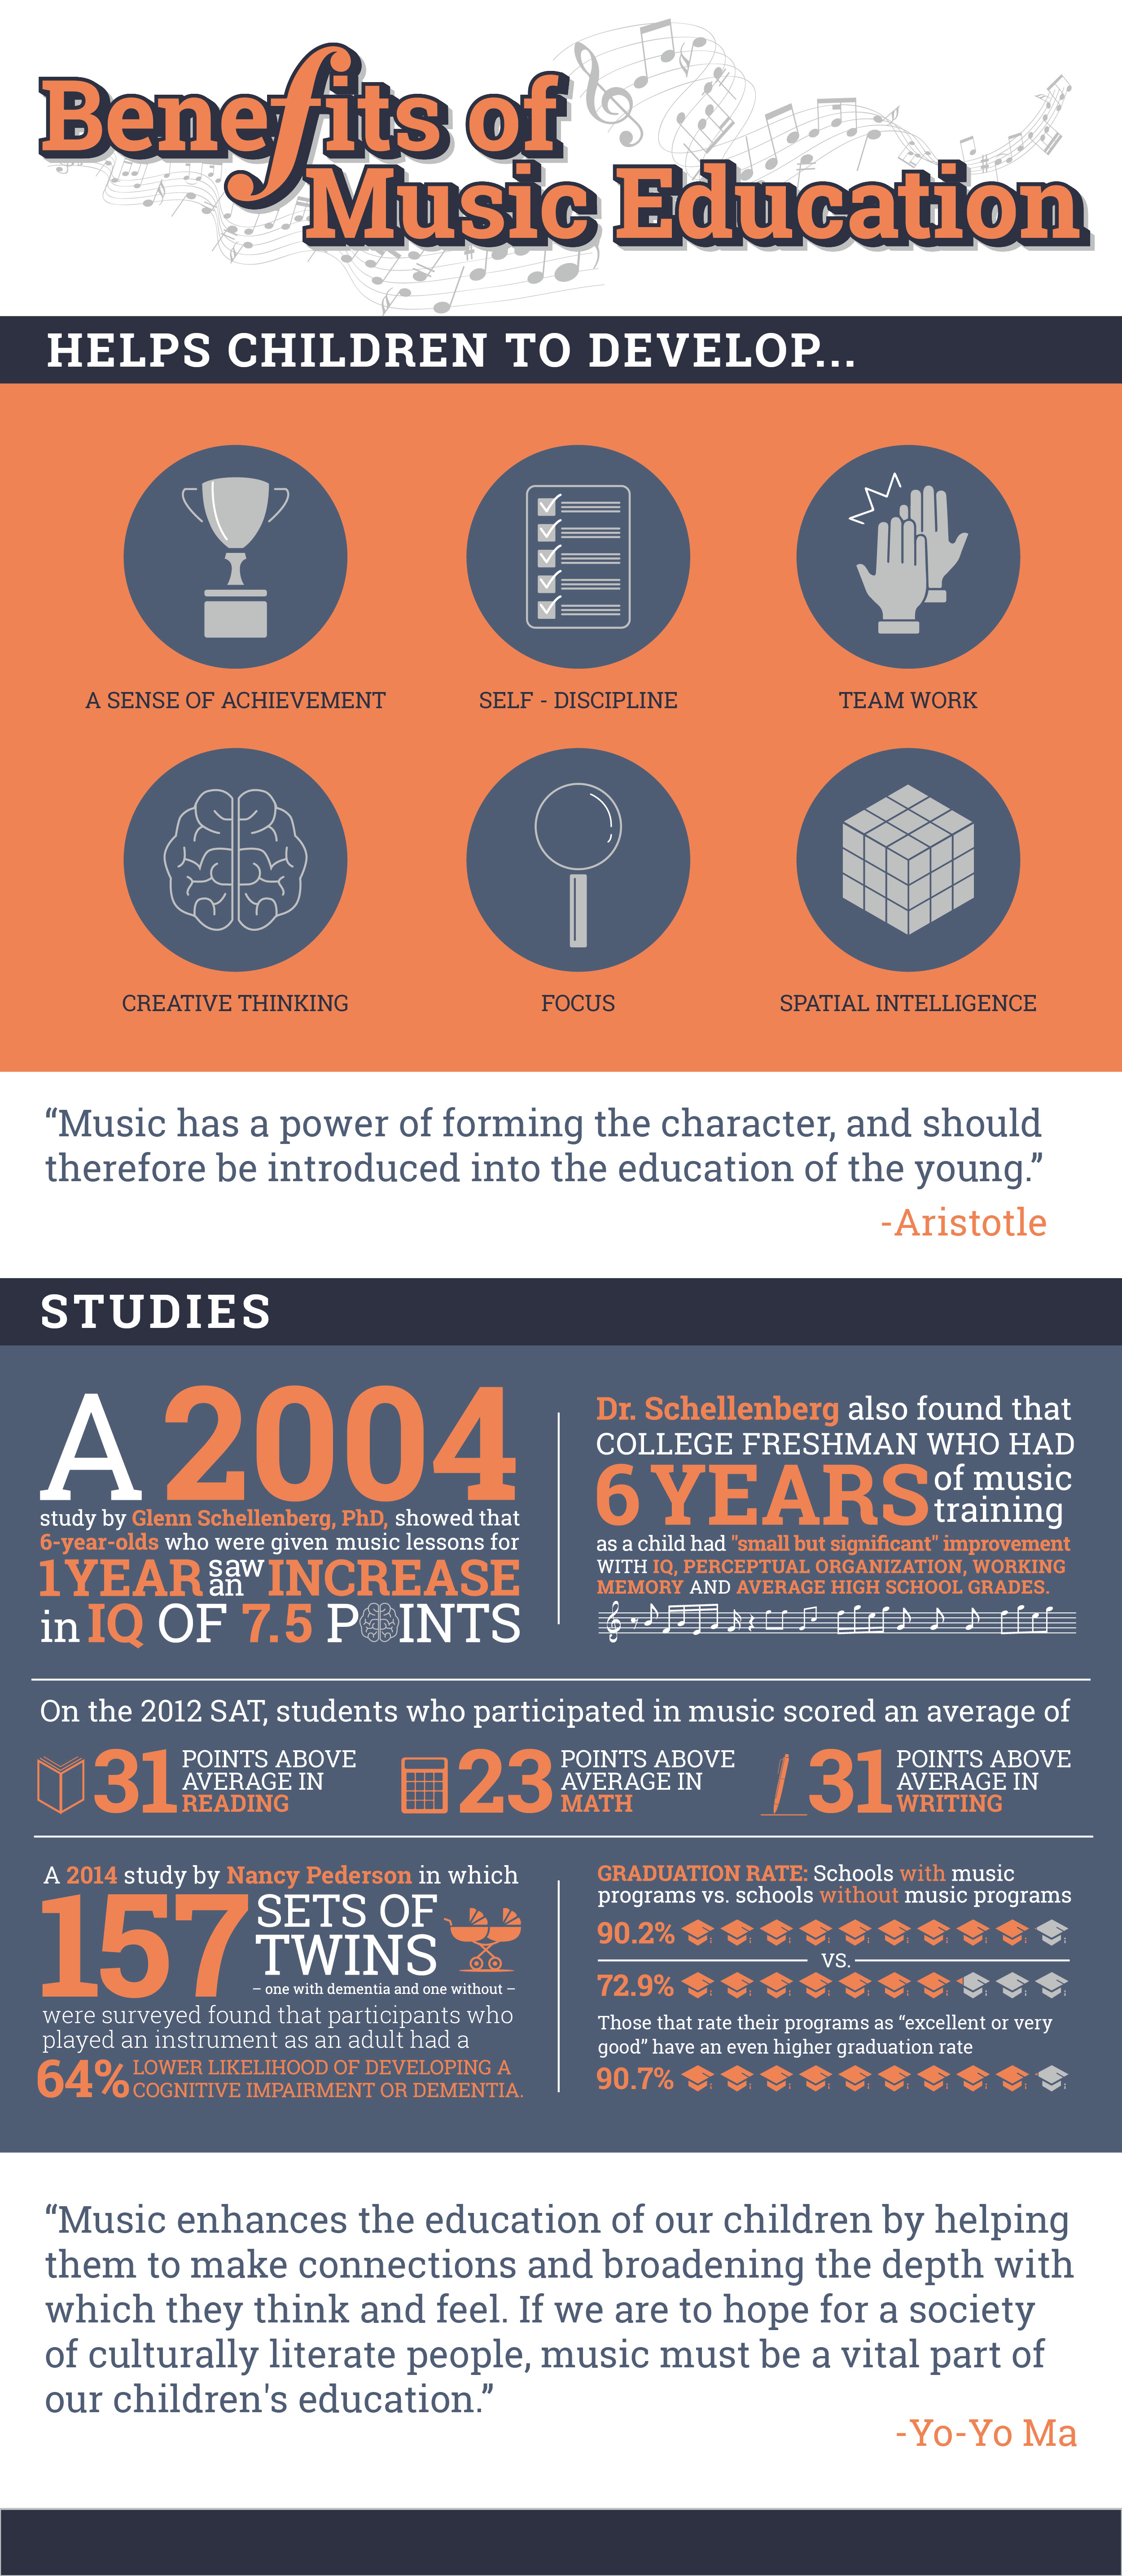 Copy of Benefits of Music Education